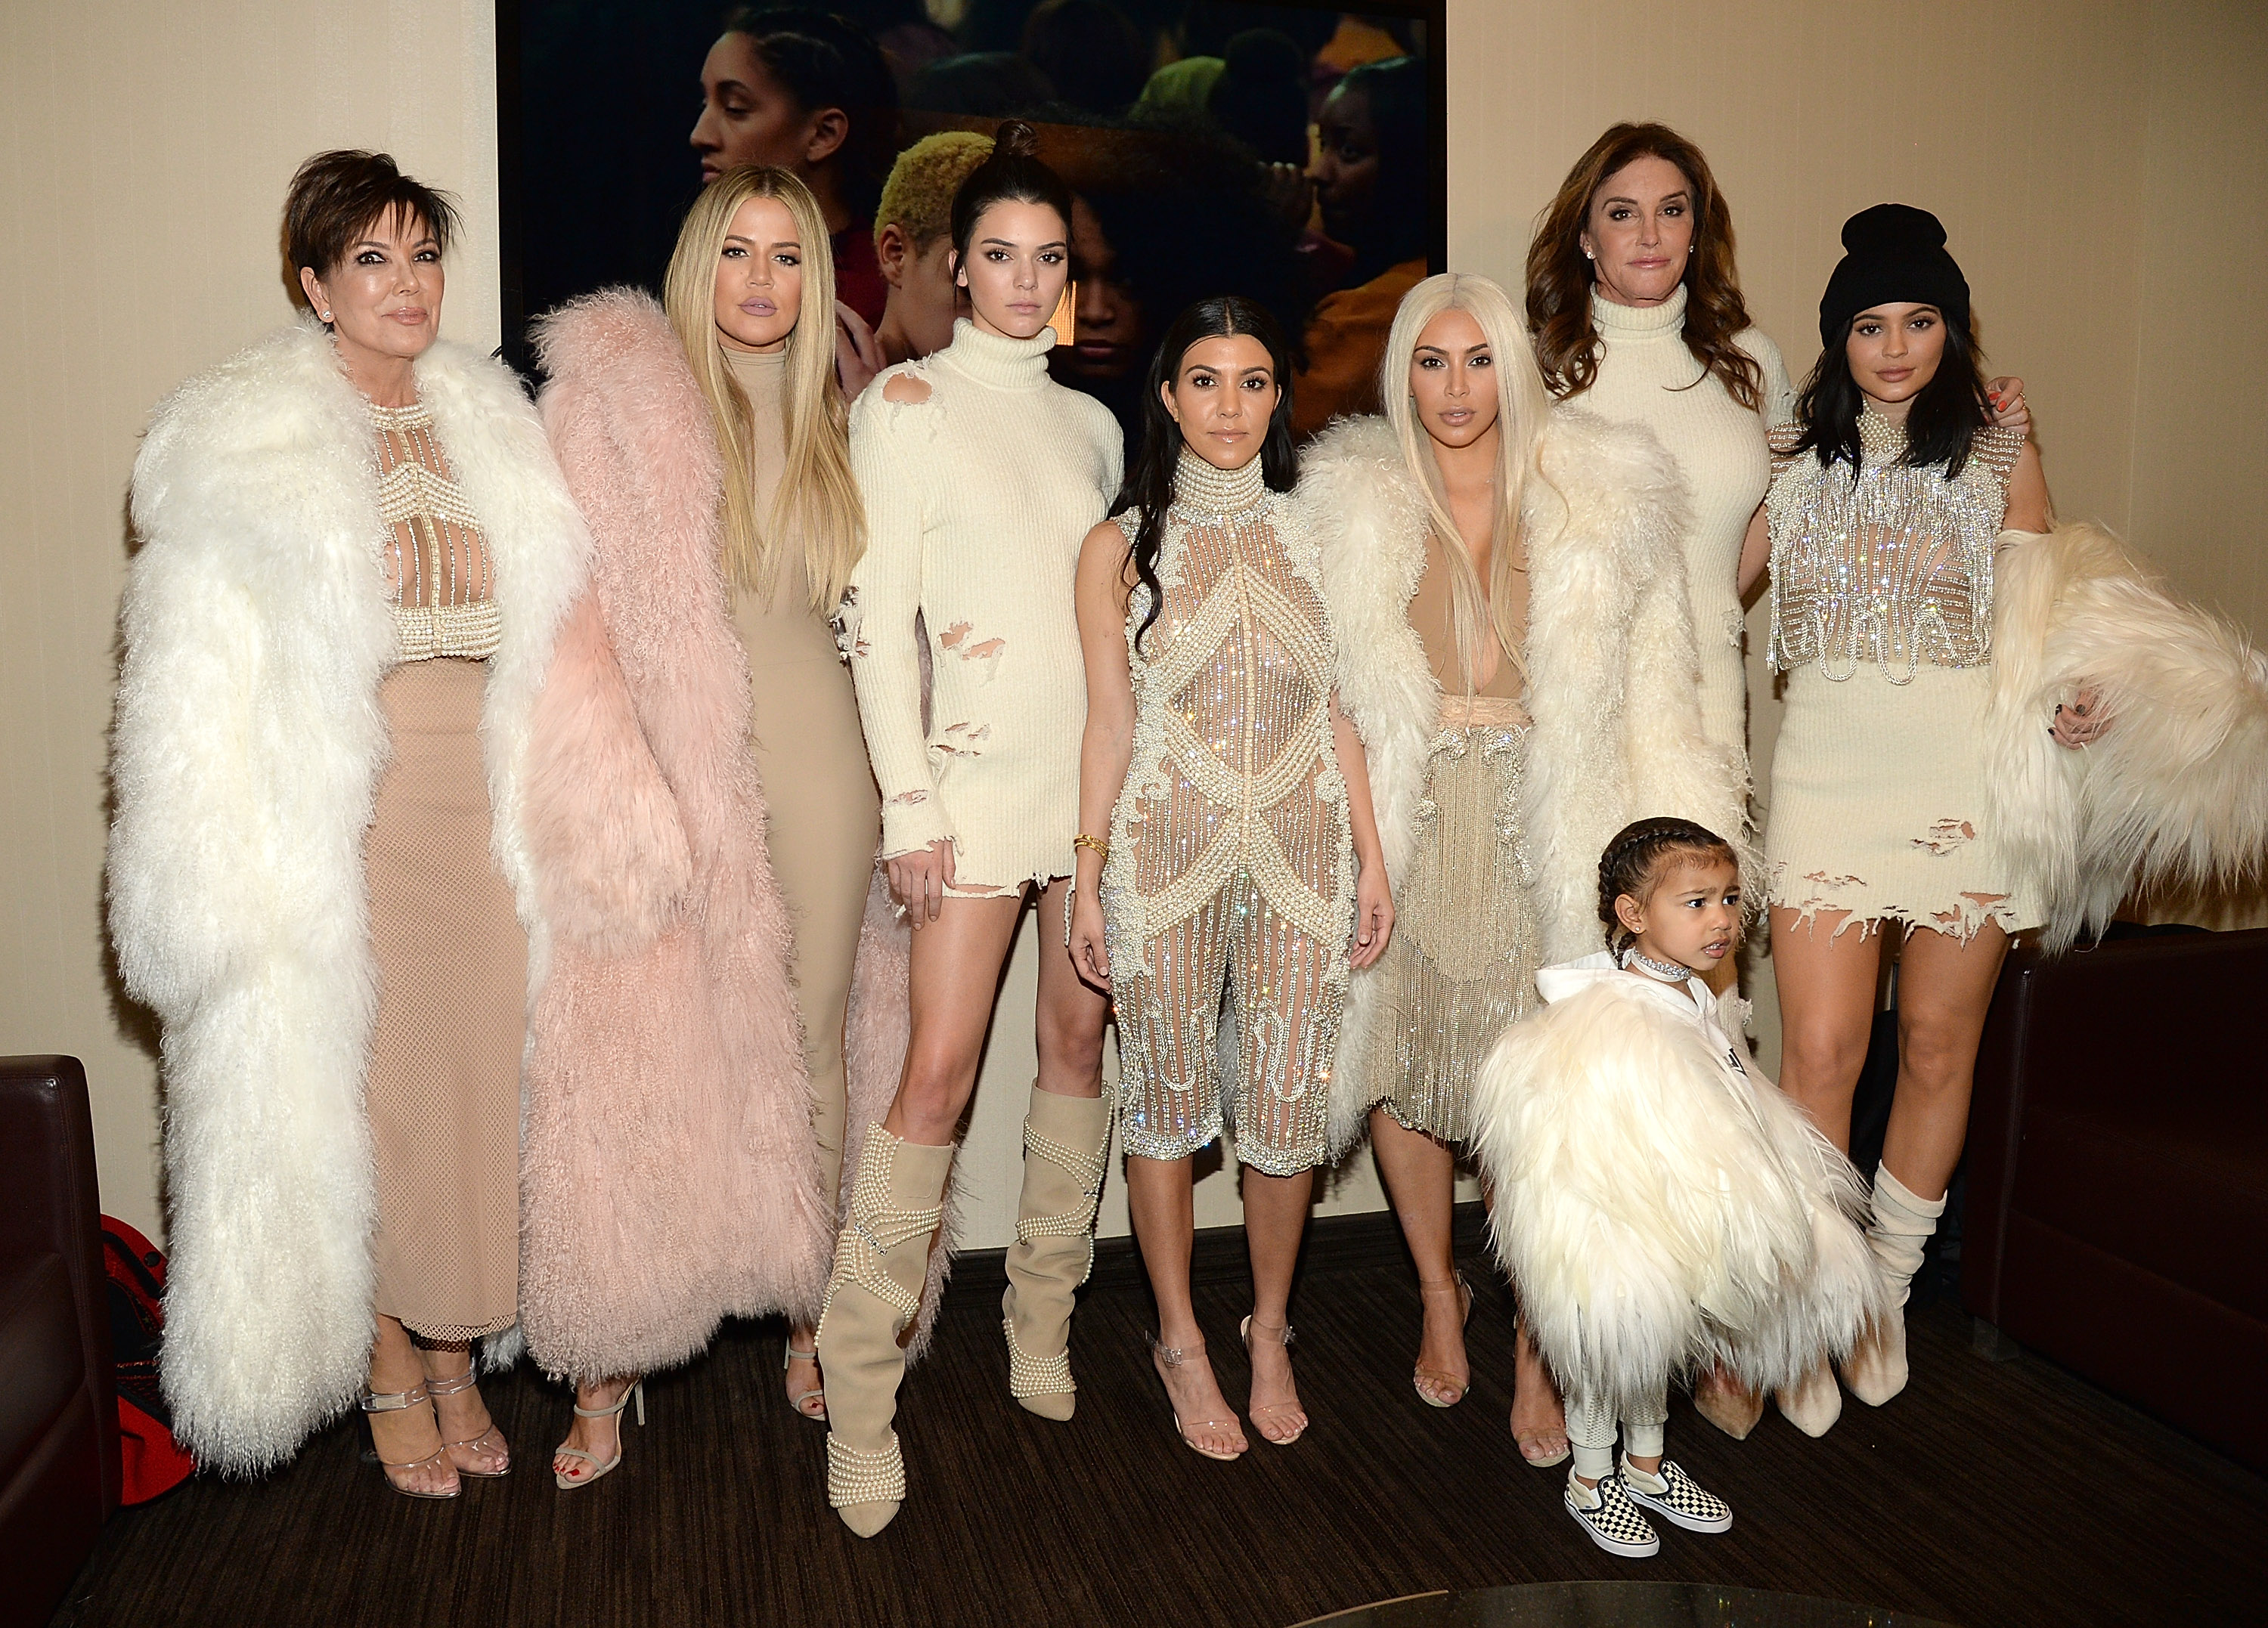 'Keeping Up with the Kardashians' Is Filming Again—But There's a Catch